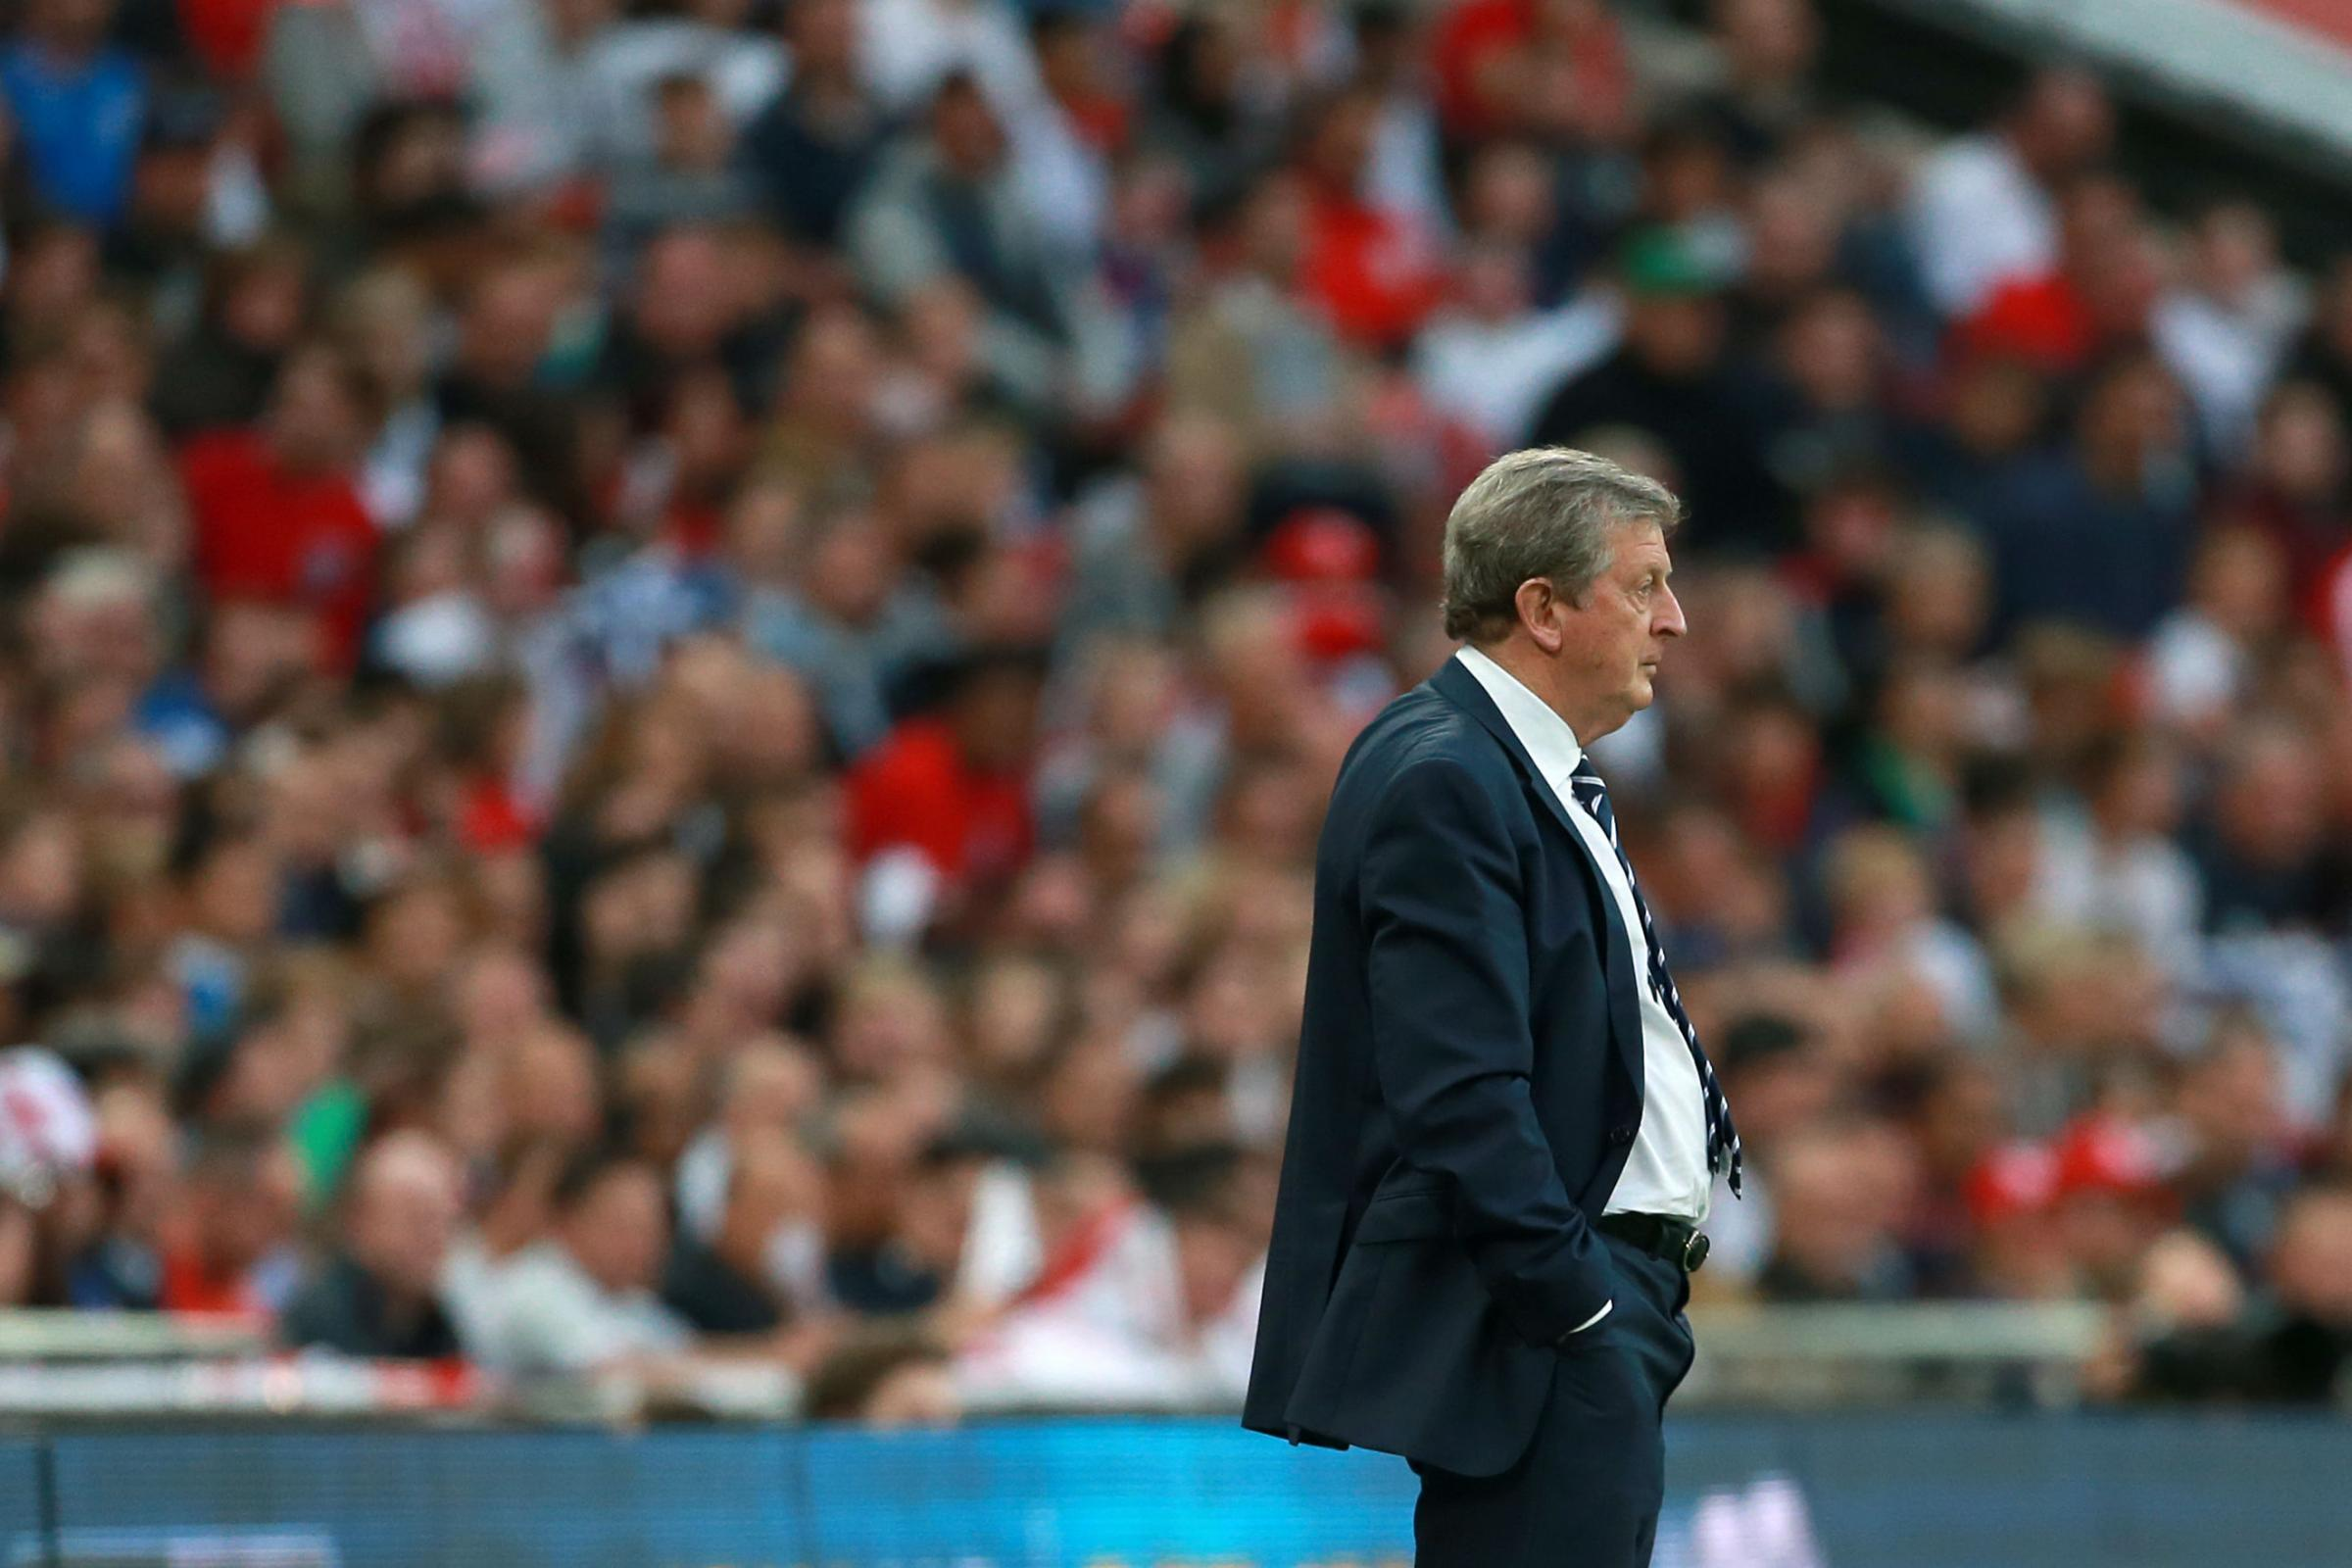 SATISFIED: Roy Hodgson was a happy man as his England side beat Peru 3-0 in their opening World Cup warm-up game